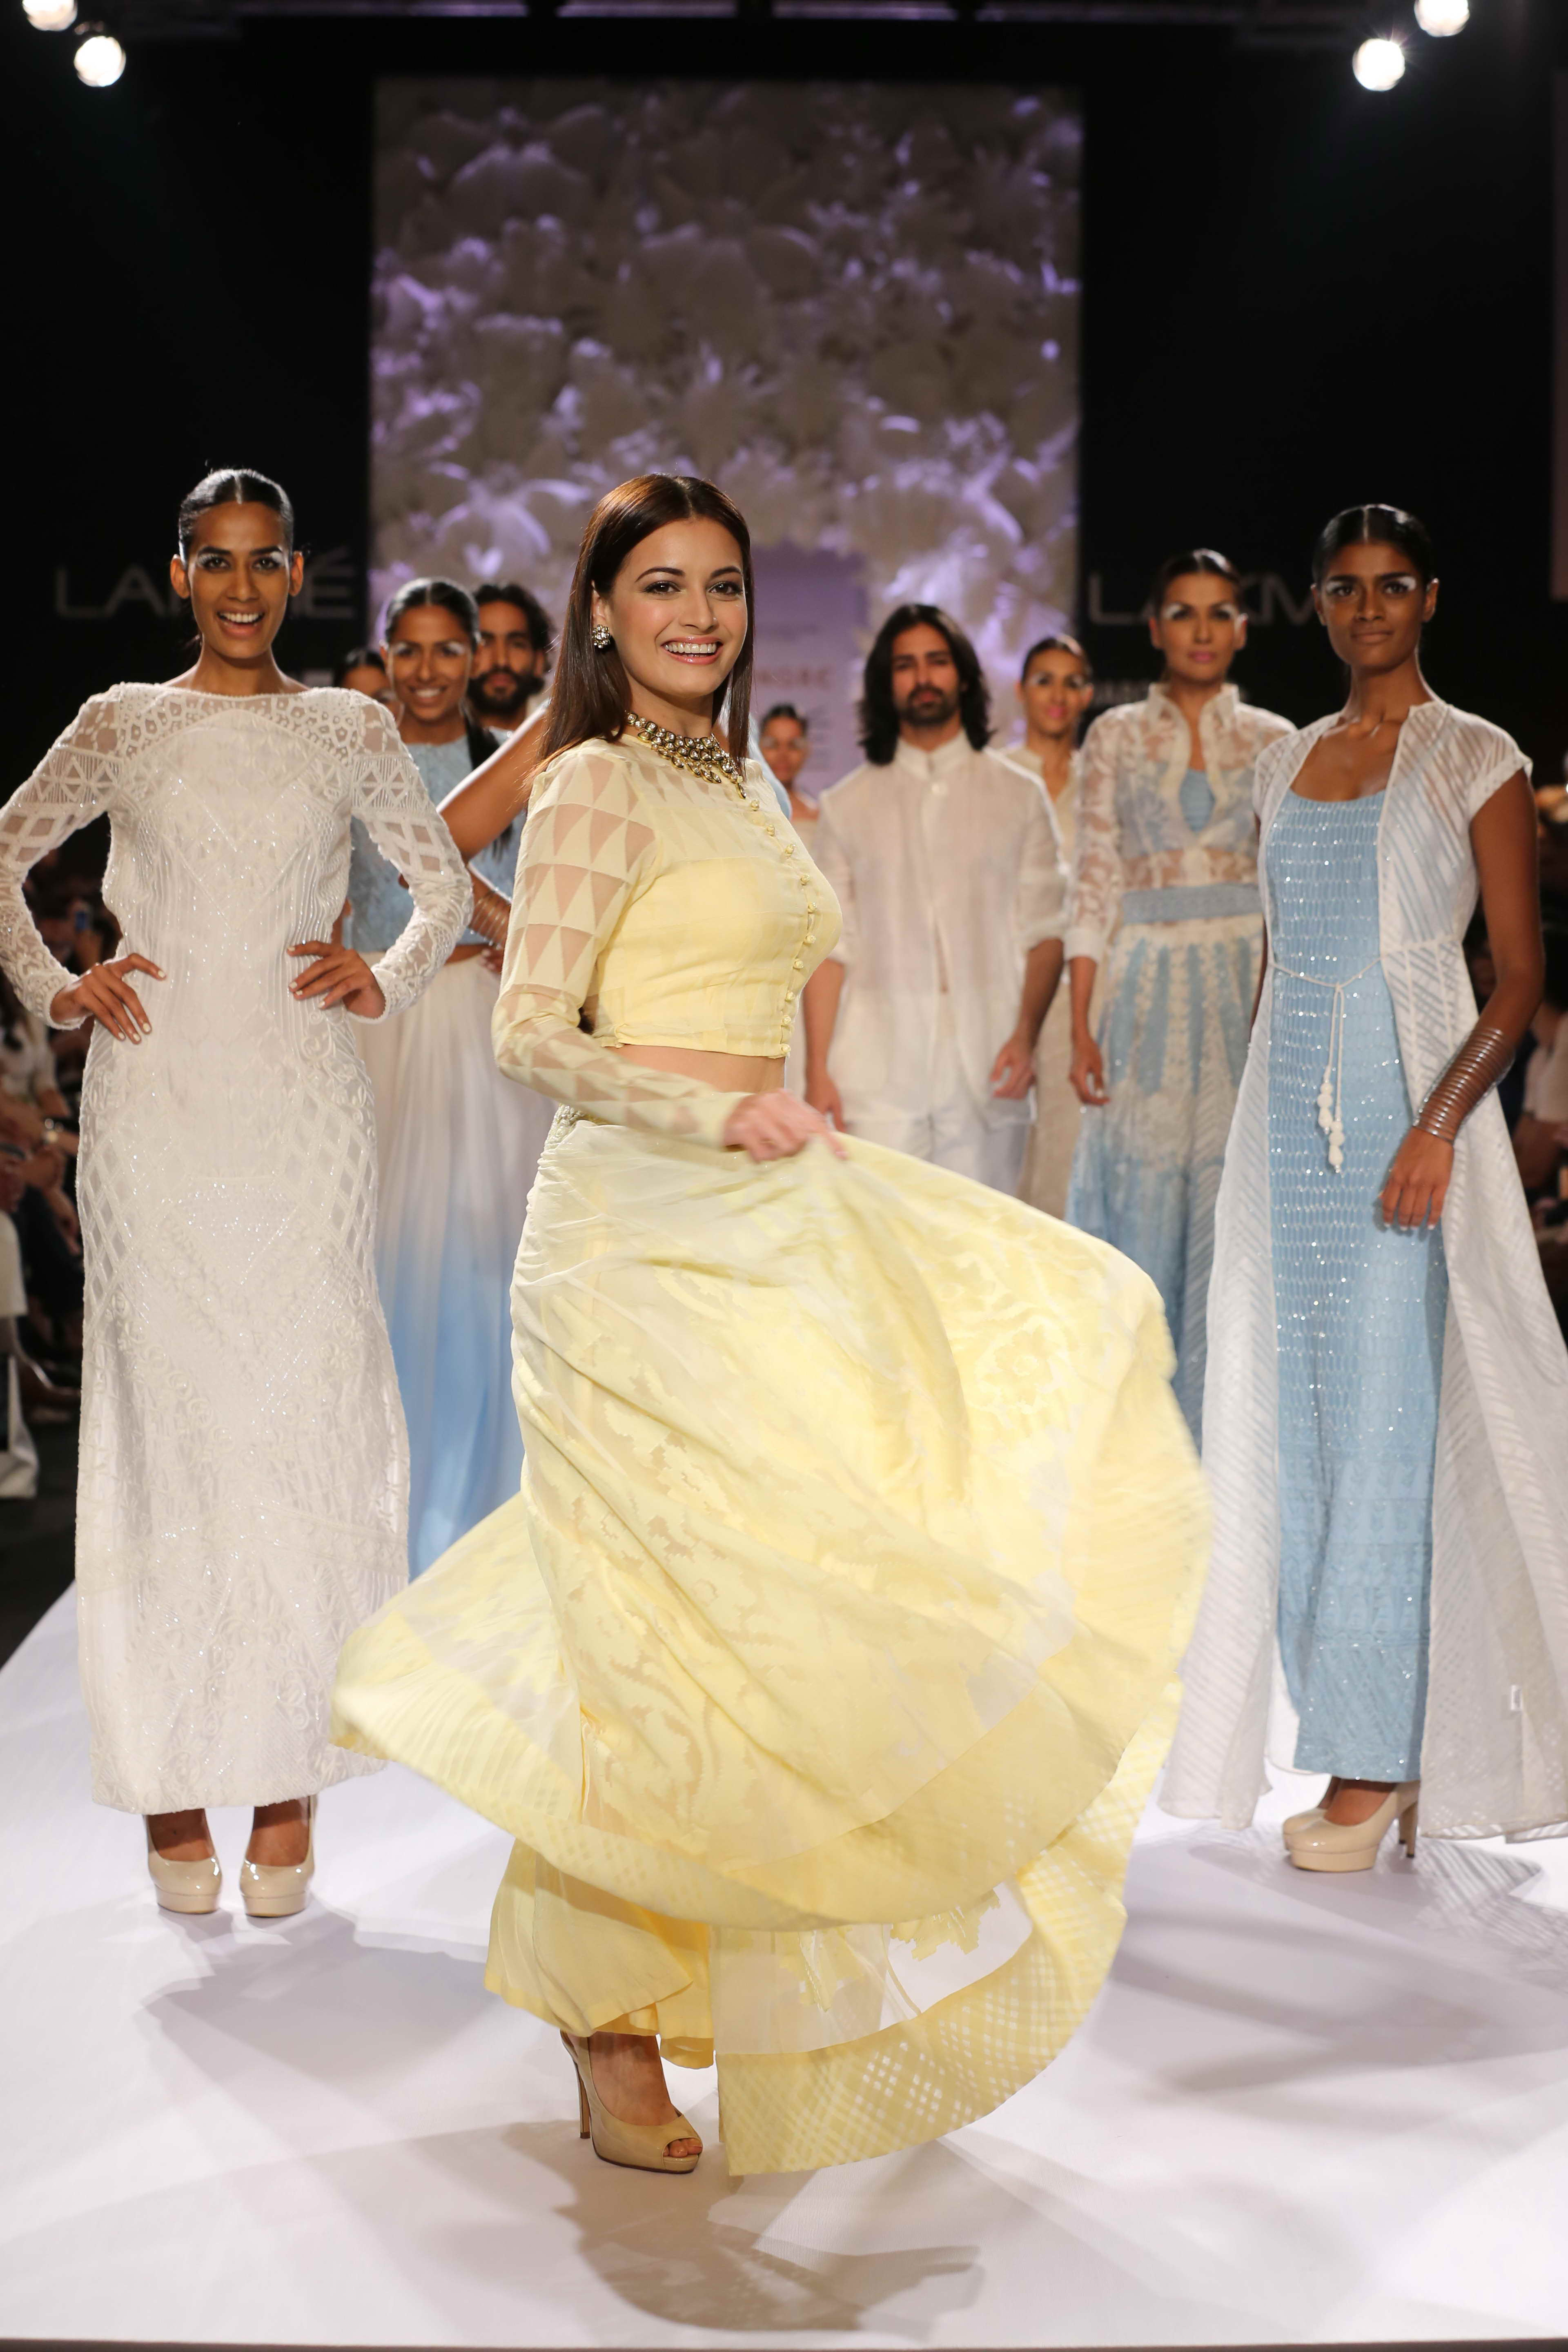 Soon there were pretty pastel sections that offered a mélange of creations. Prét separates with hints of couture touches had a boho luxe look. The beauty of the Varanasi weaves was perfectly highlighted in the pencil skirts, stately column gowns and th